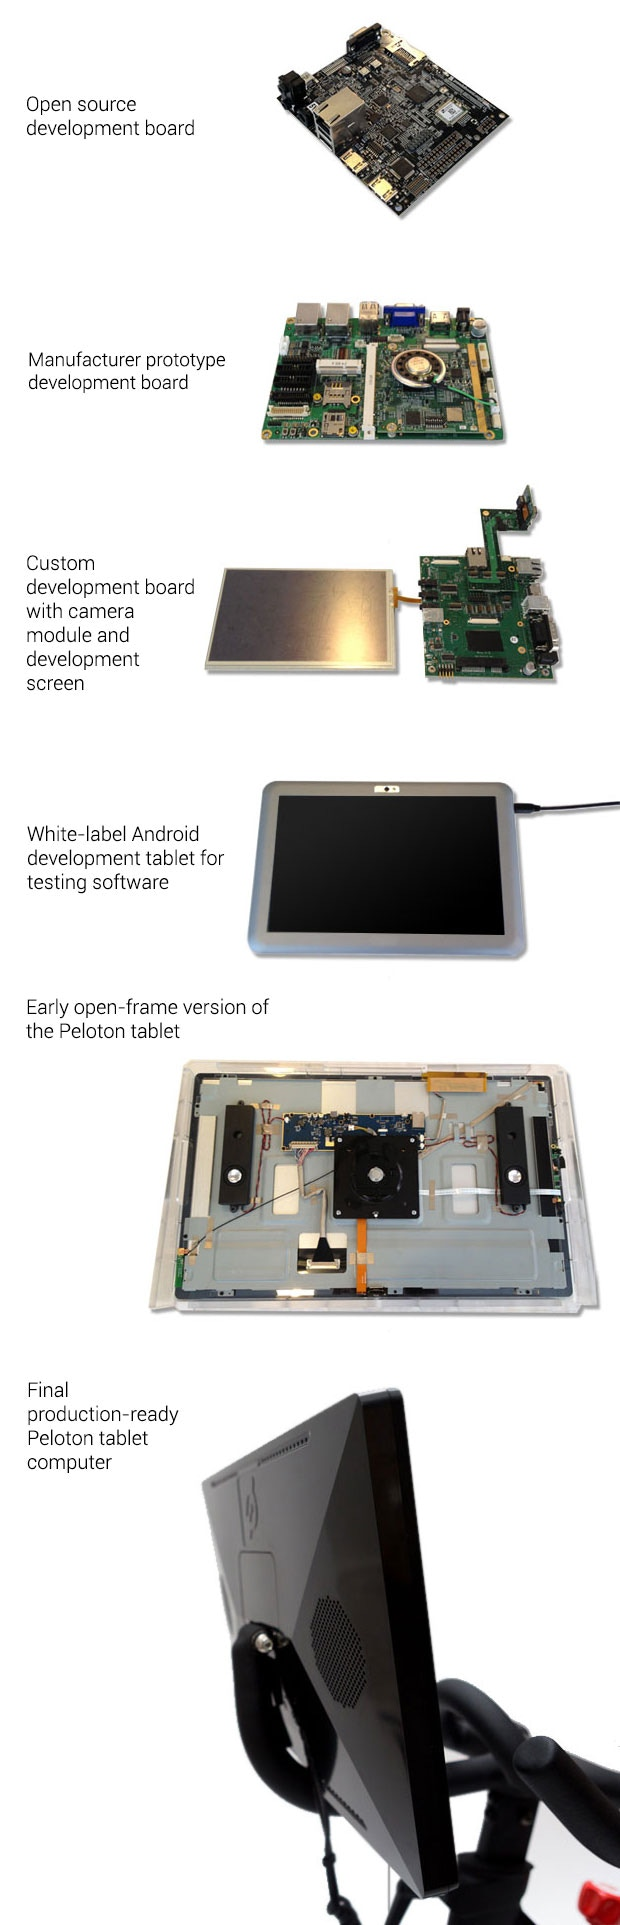 Evolution of the Peloton Tablet